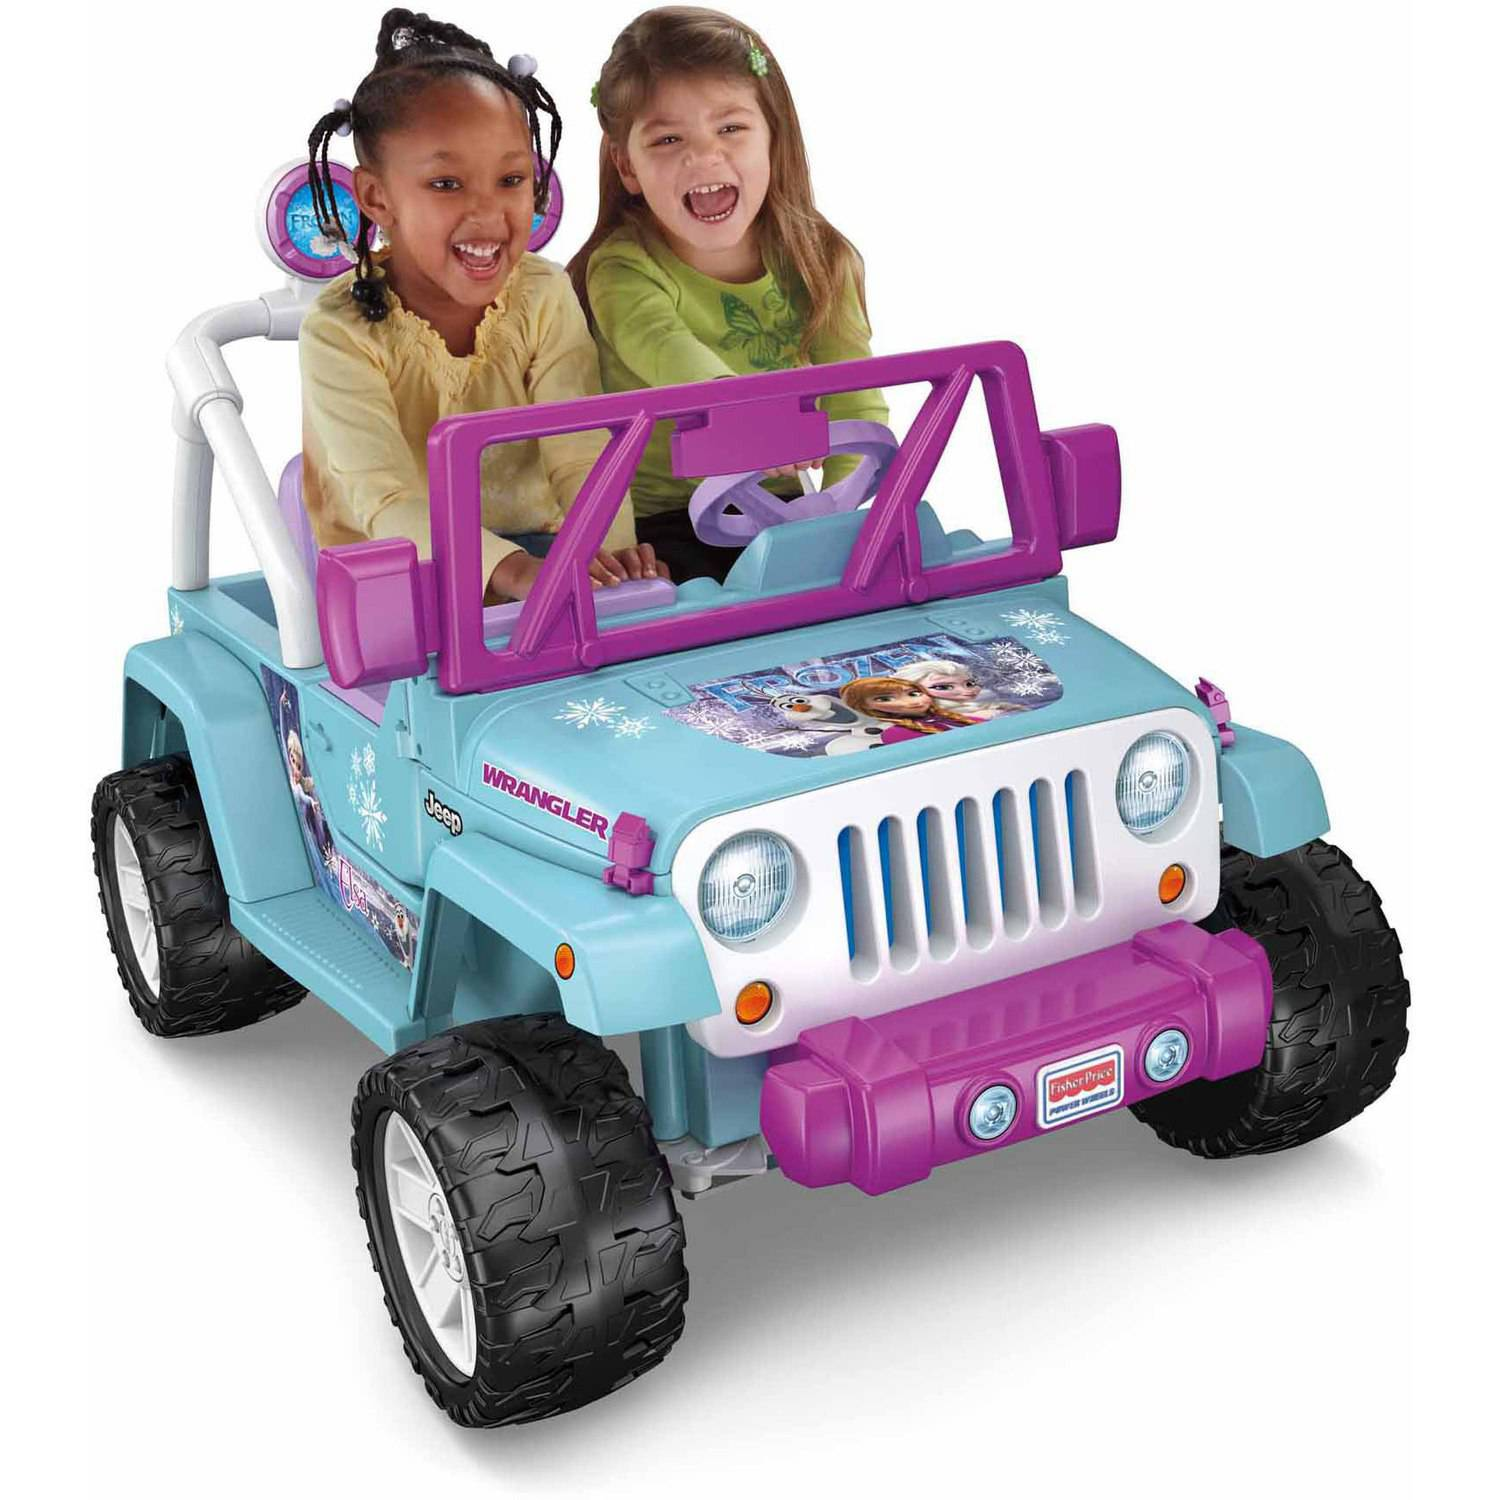 Power Wheels Disney Frozen Jeep Wrangler 12-Volt Battery-Powered Ride-On by FISHER PRICE